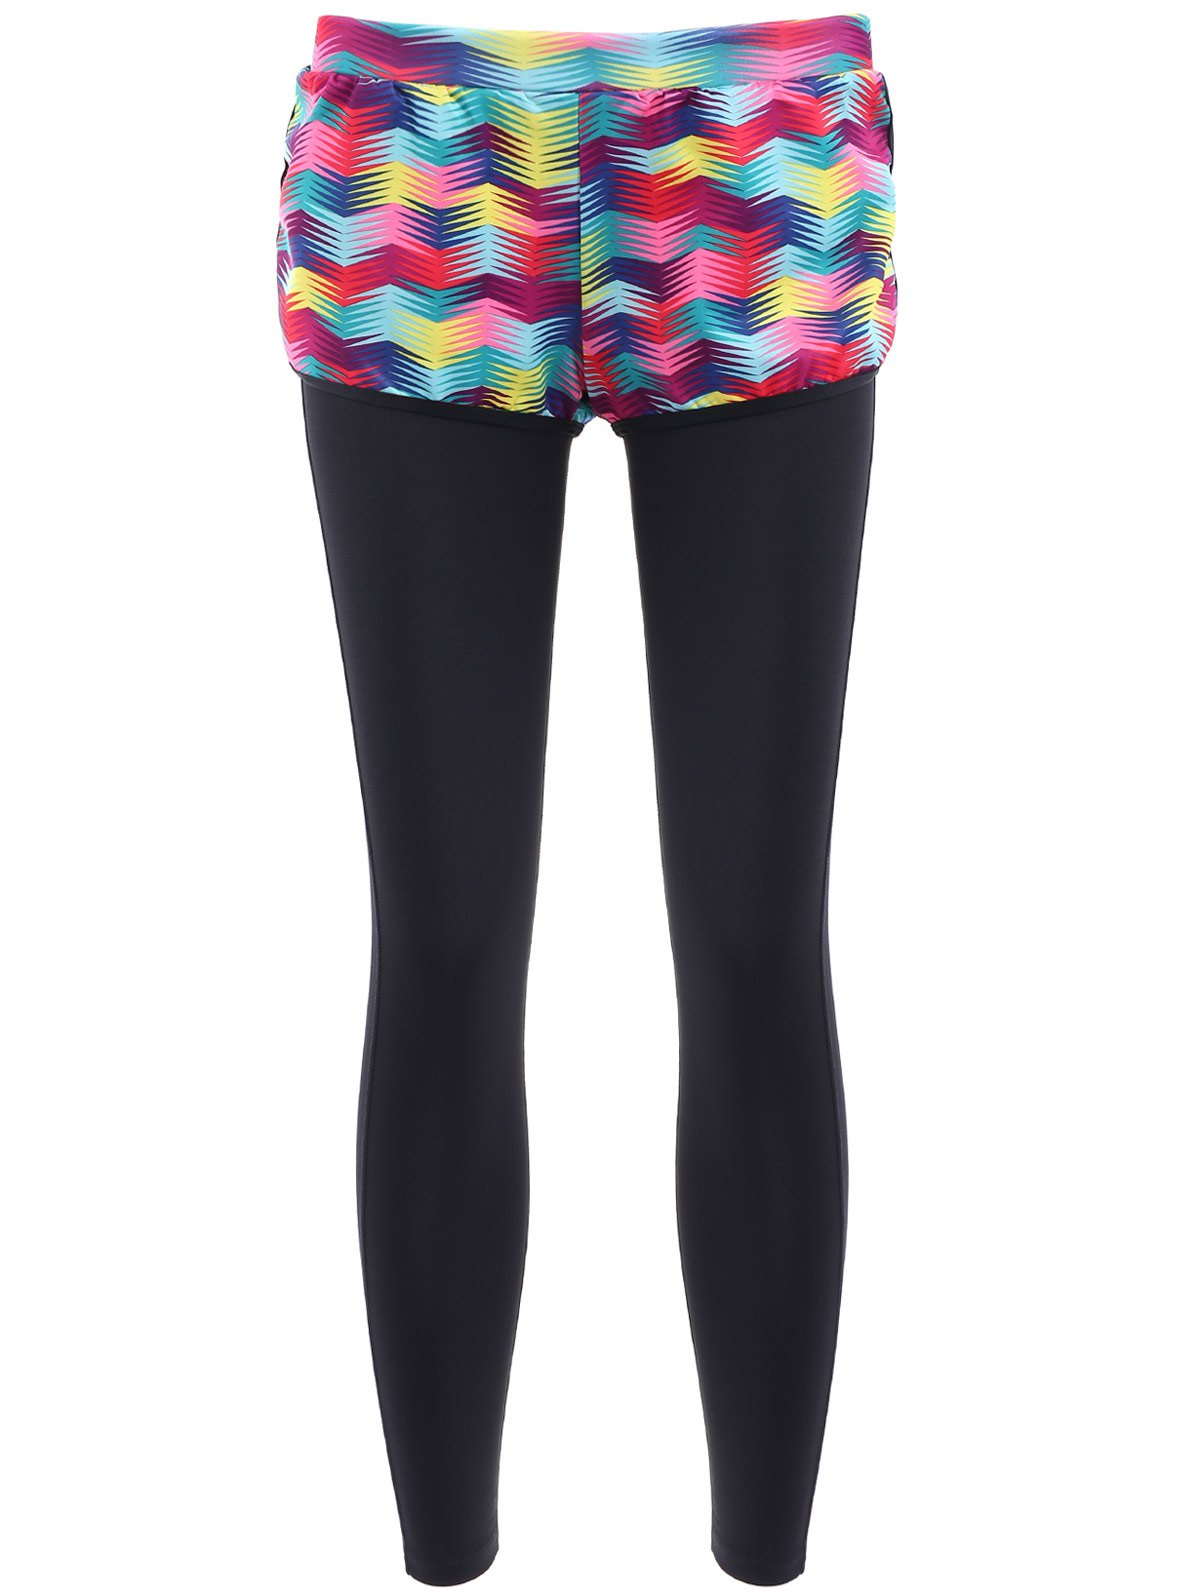 Stylish Faux Twinset High-Waisted Printed Women's Yoga Pants